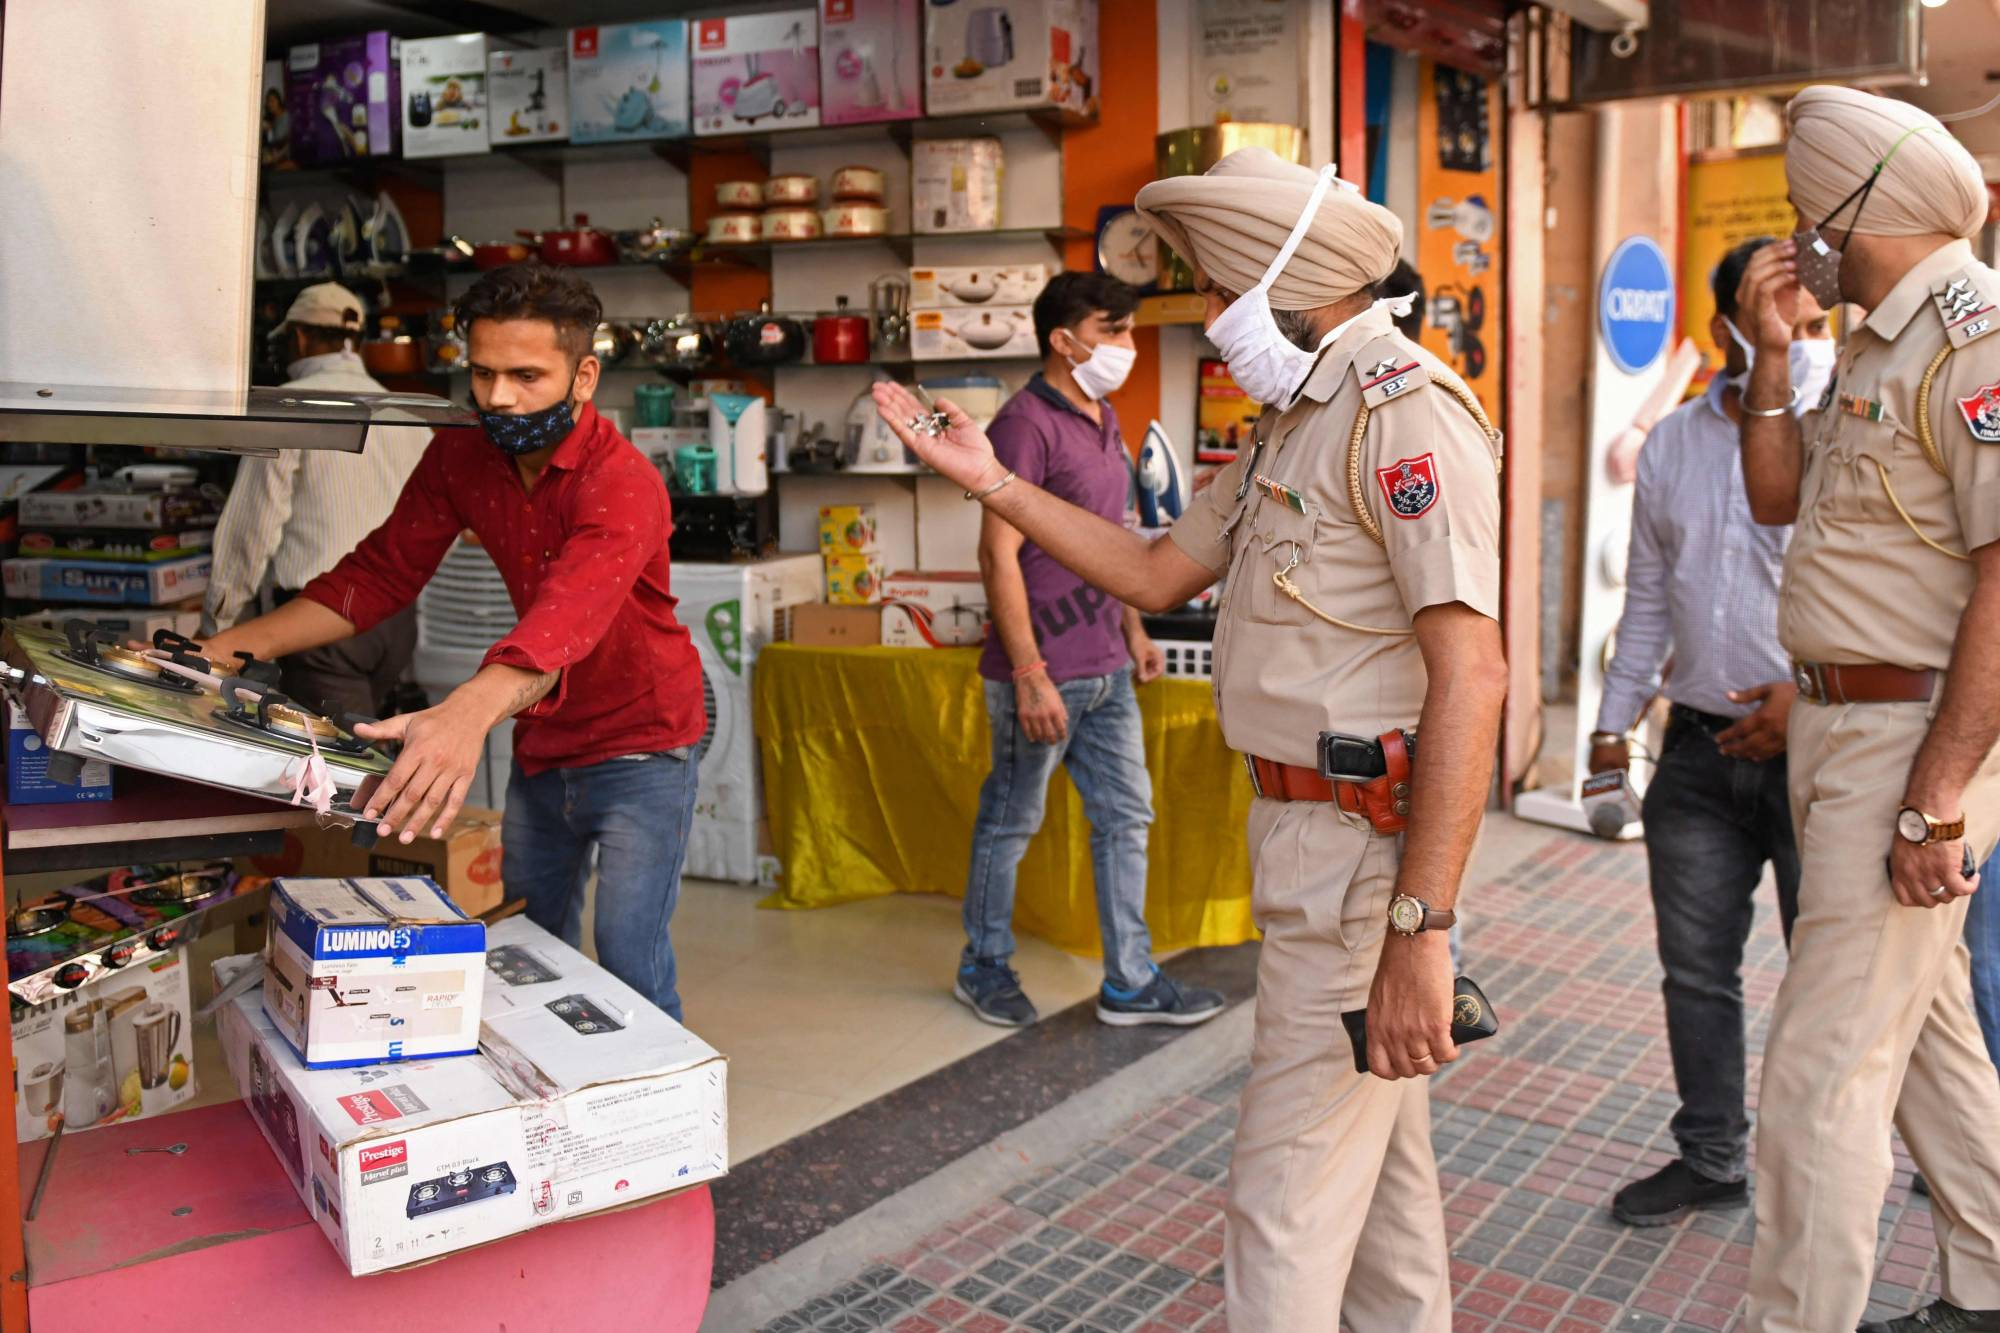 Police are urging traders to close before a nighttime curfew begins following the state government's directive to curb the spread of COVID-19 in Amritsar, India on Tuesday.  |  AFP-JIJI